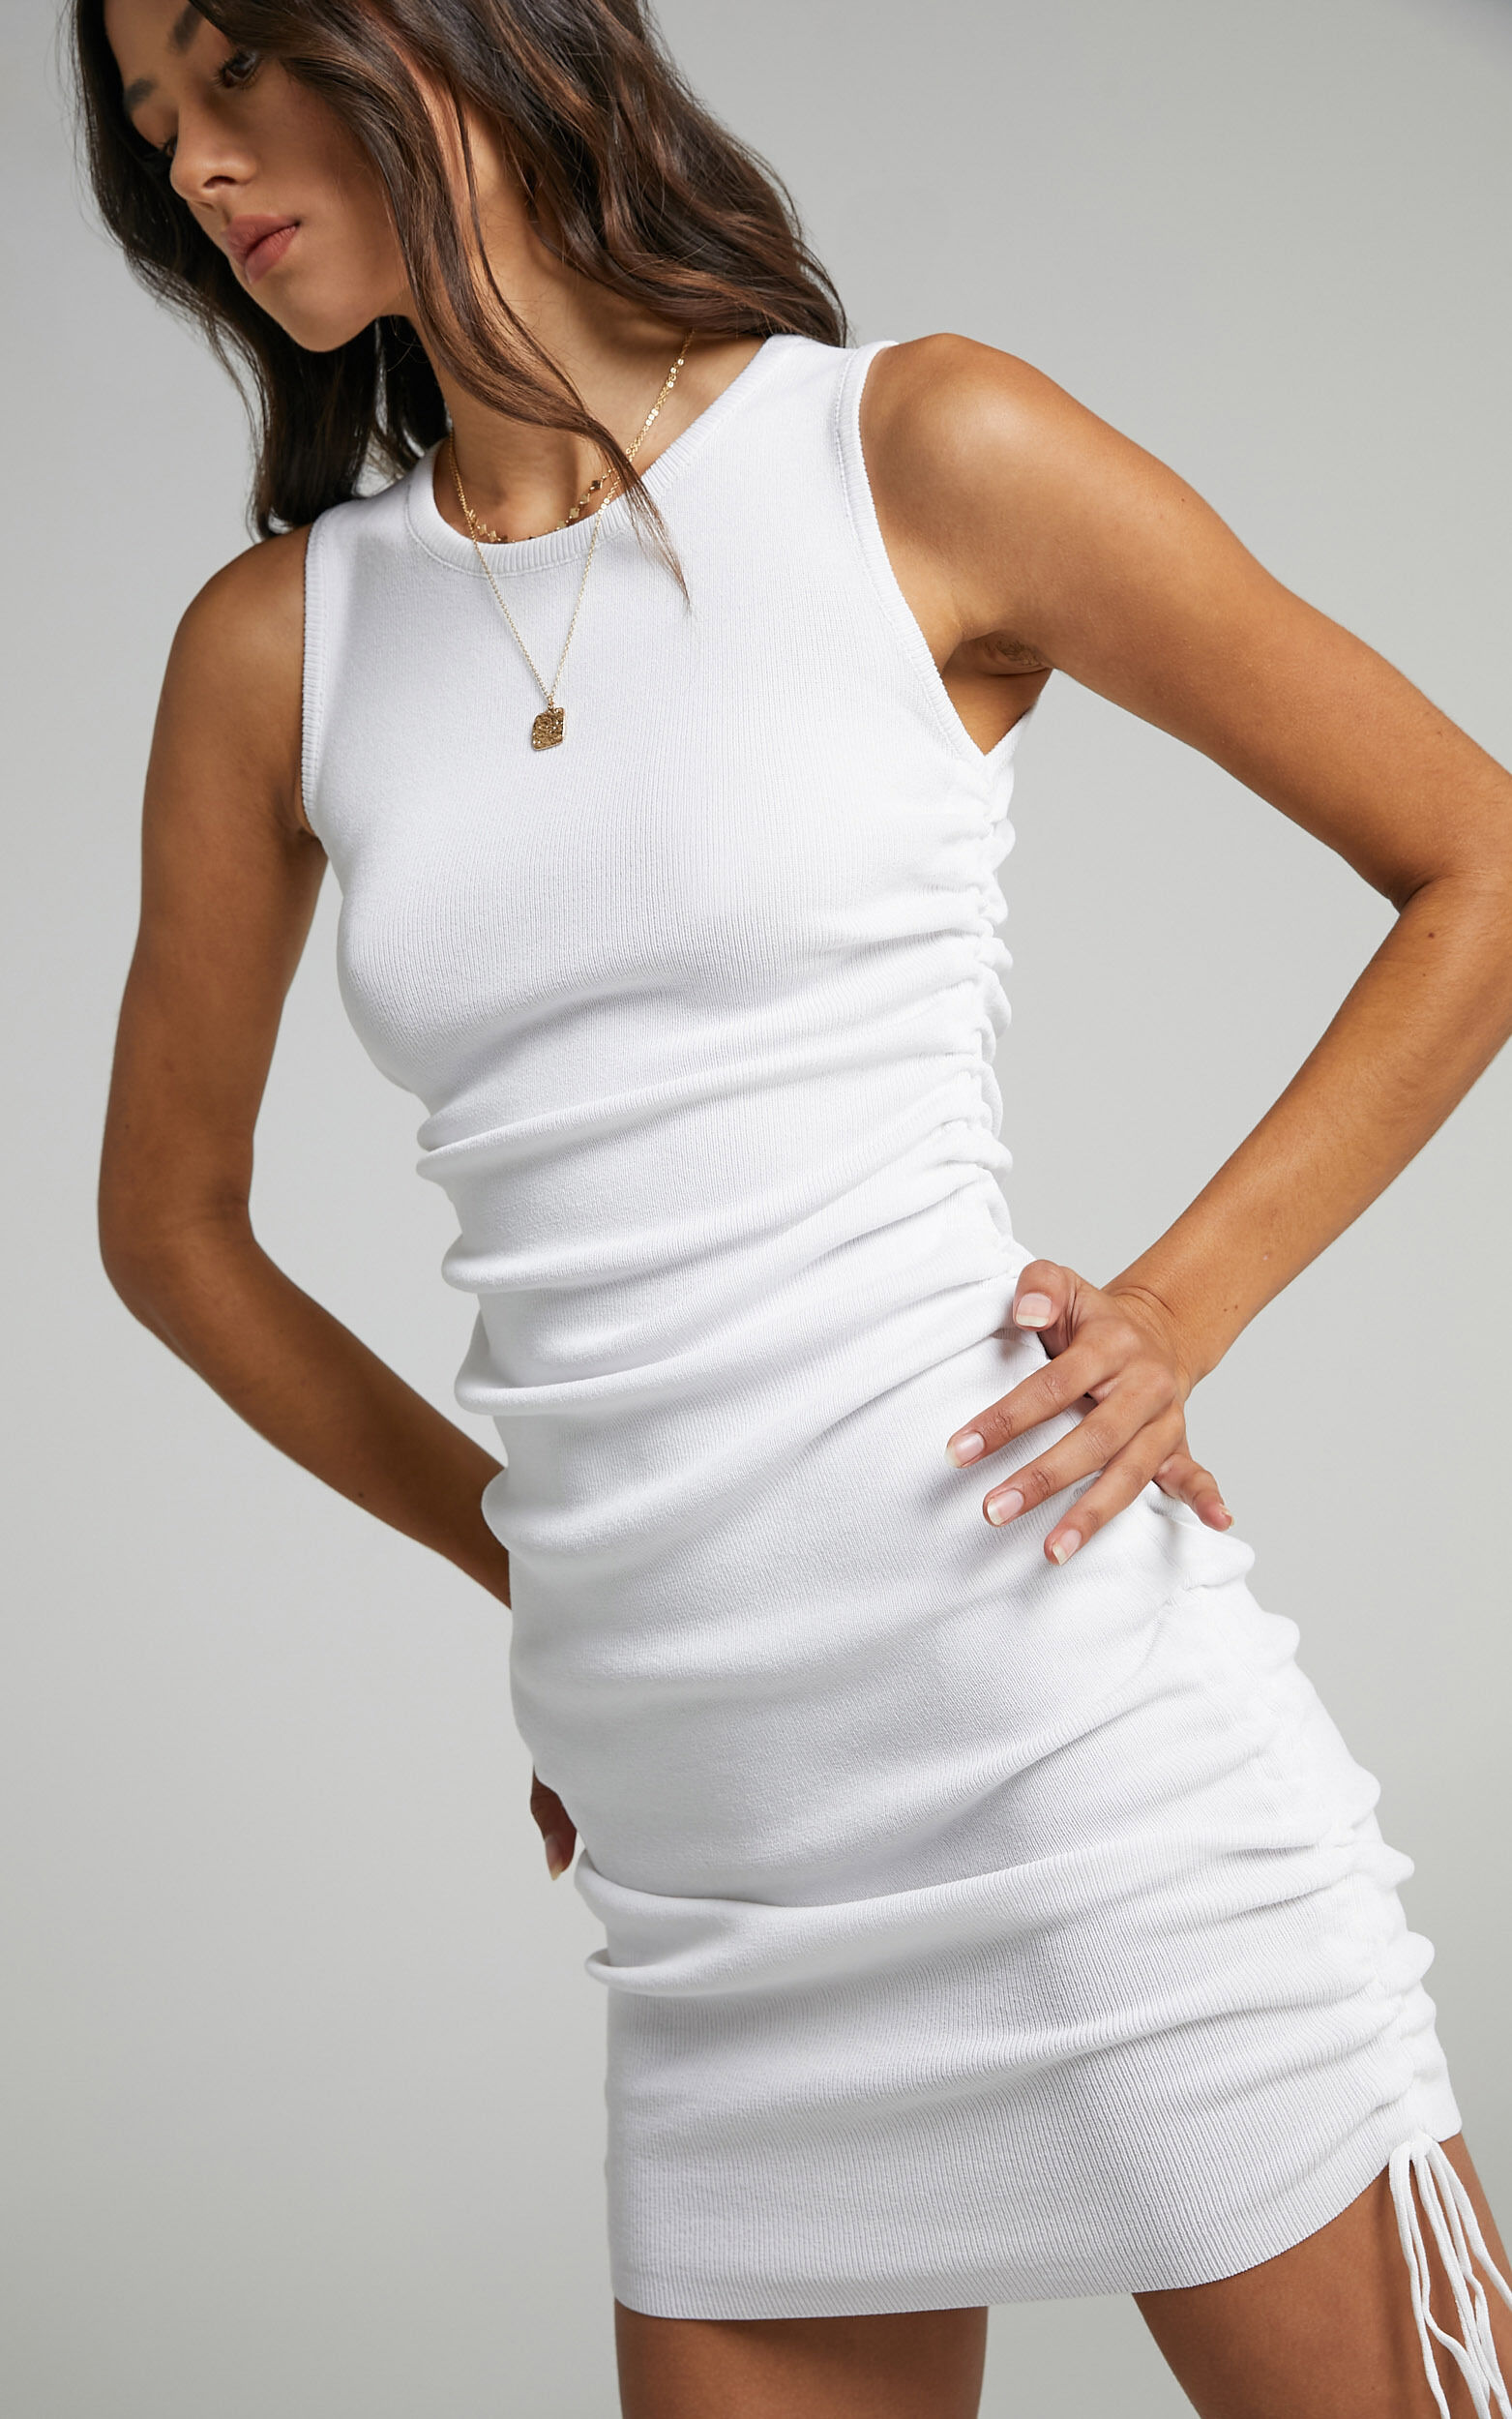 Lioness - Military Minds Dress in White - 12, WHT11, super-hi-res image number null